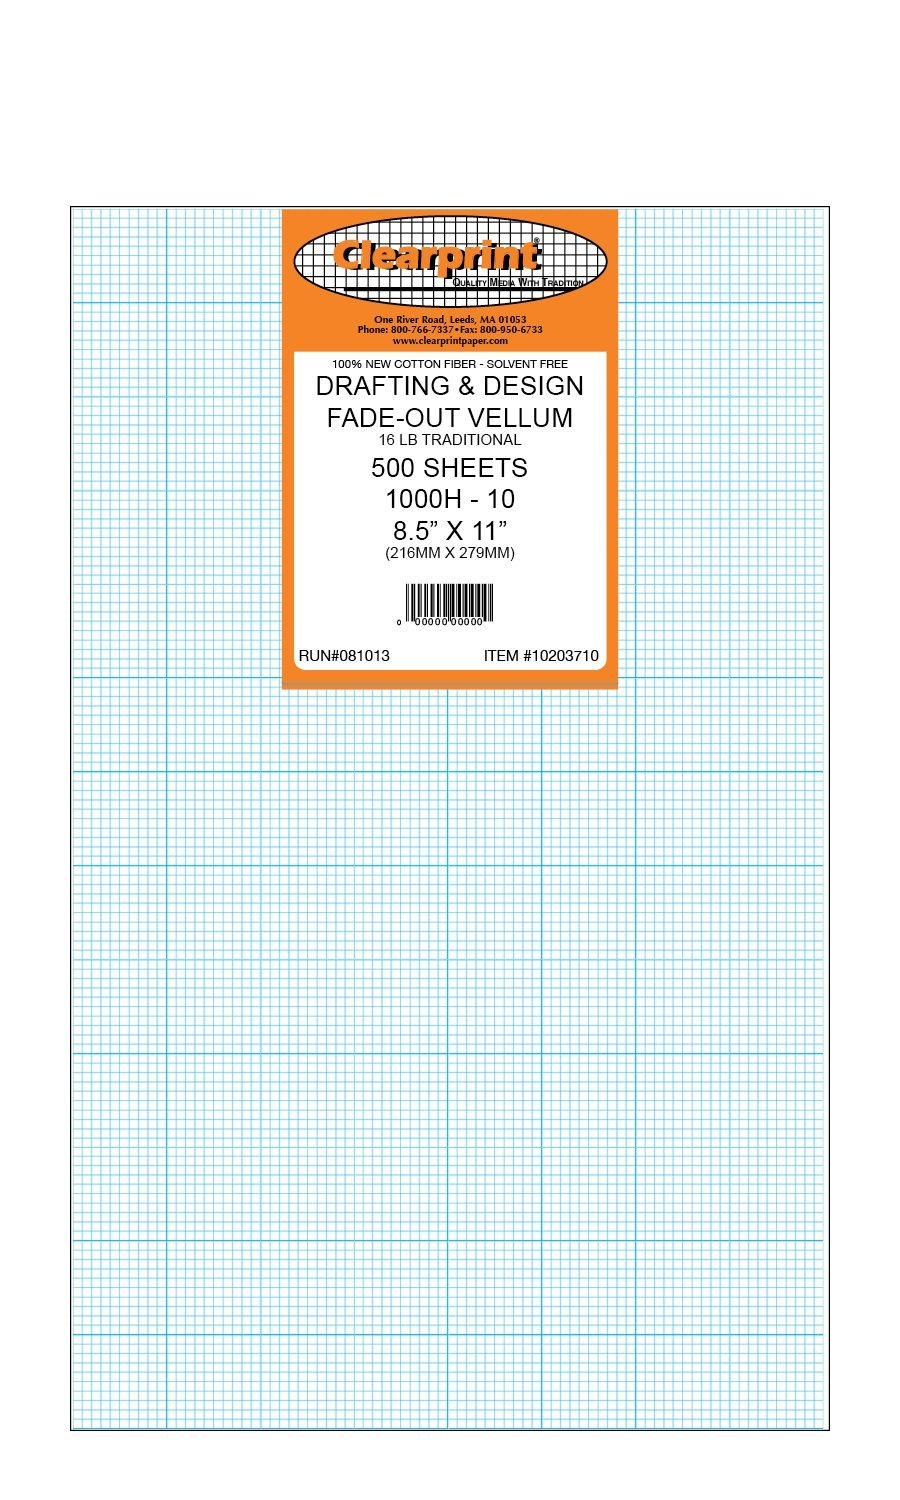 Clearprint 1000H Design Vellum Sheets with Printed Fade-Out 10x10 Grid, 16 Lb., 100% Cotton, 8-1/2 x 11 Inches, 500 Sheets Per Pack, 1 Each (10203710)